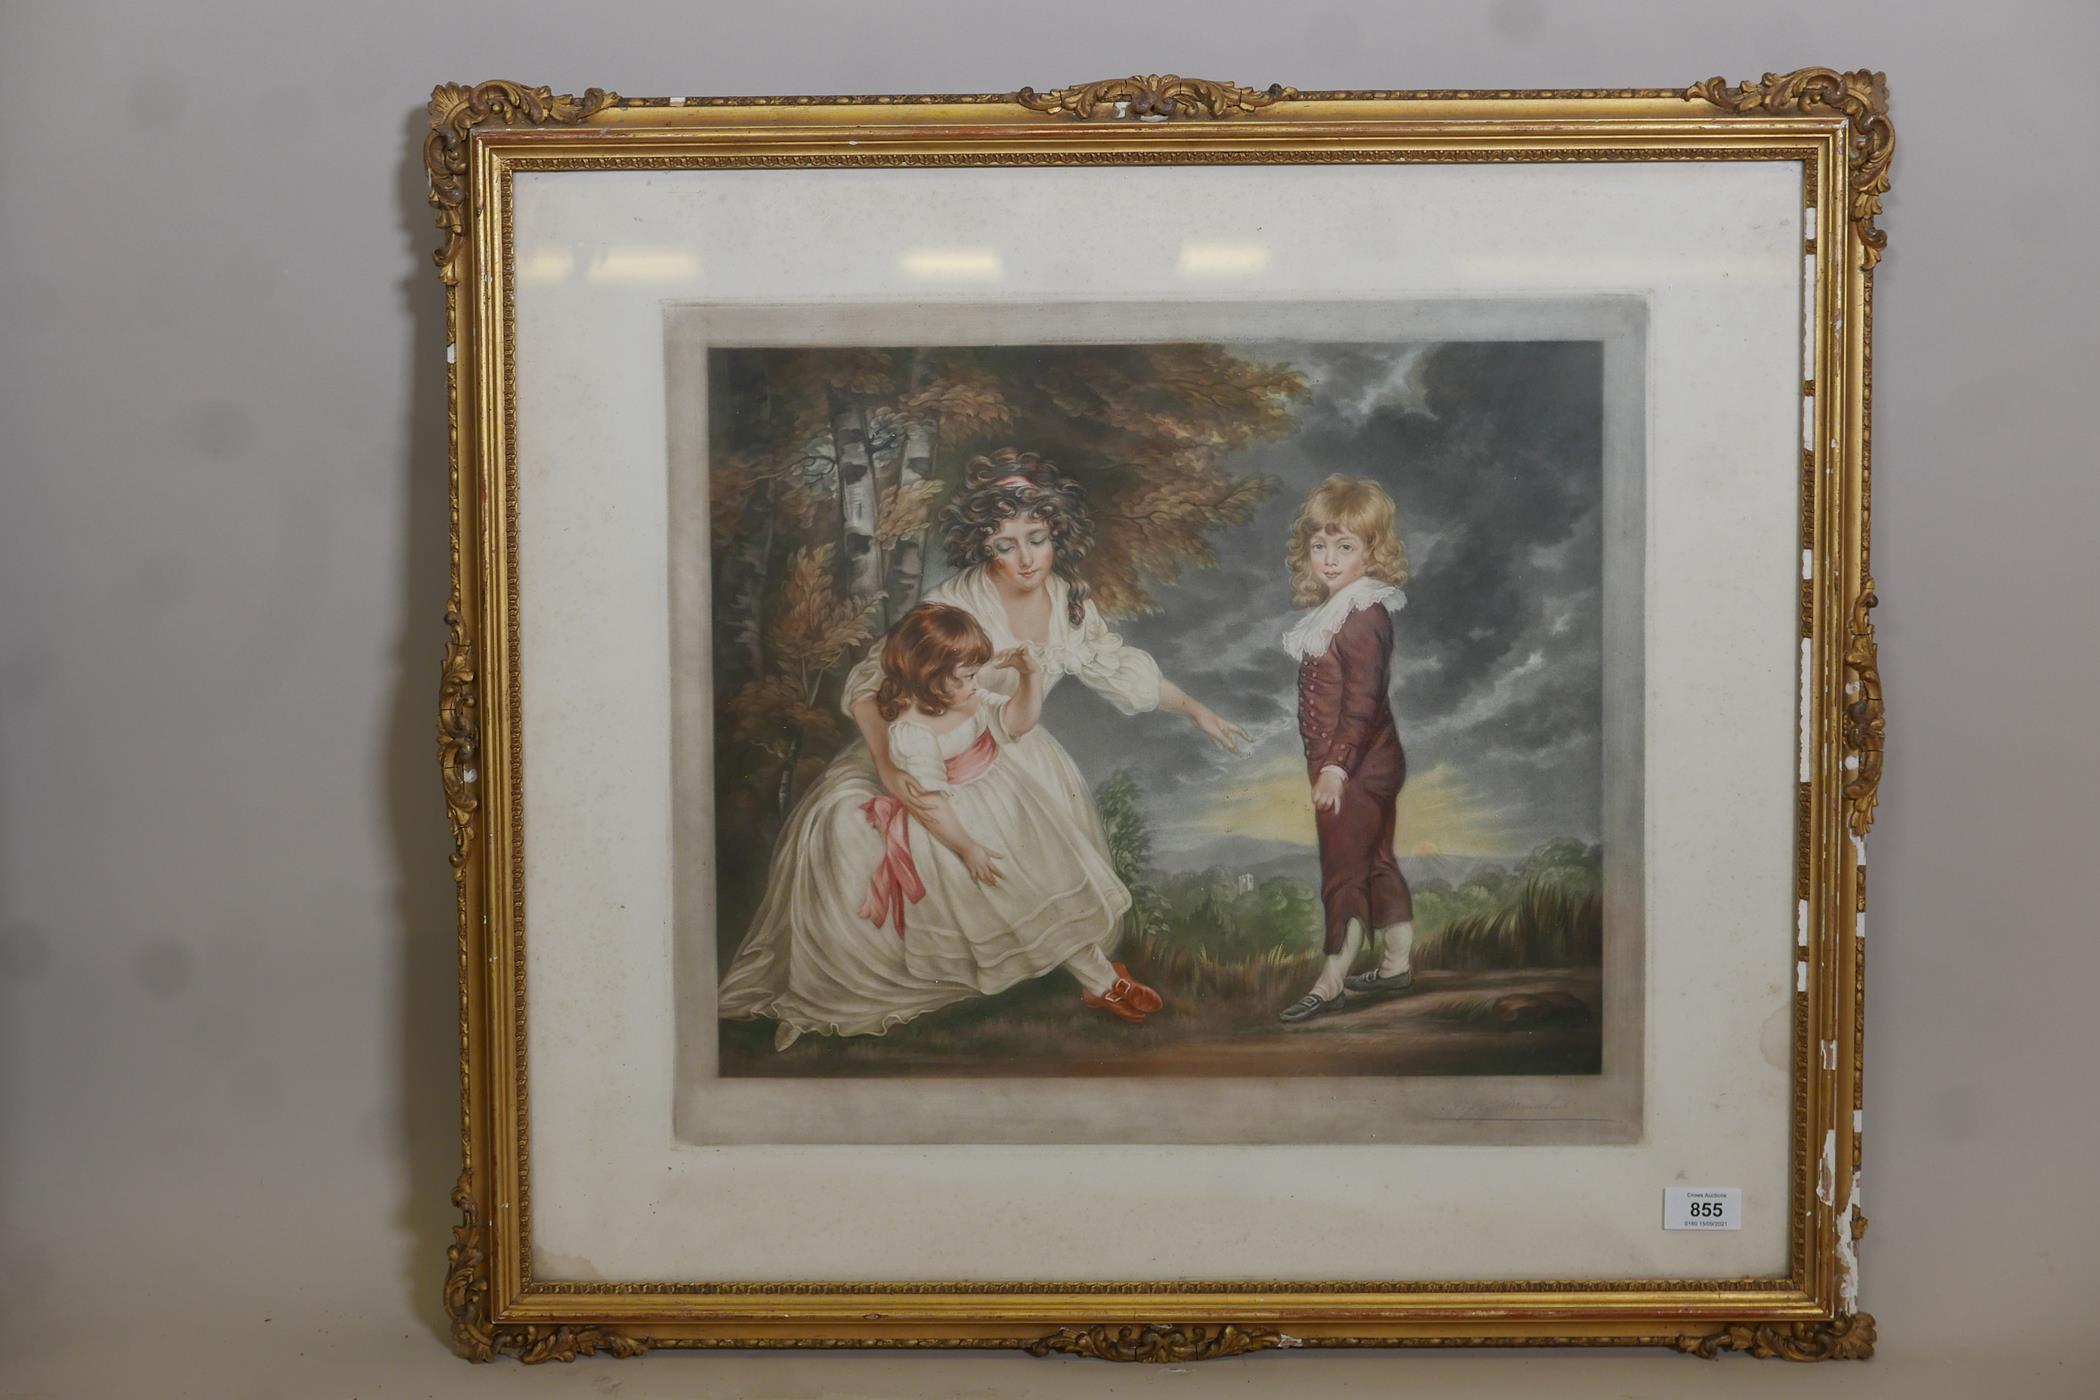 After George Romney, 'The Setting Sun' (Godard ? Children) mezzotint, published by Dowdeswell and - Image 2 of 6